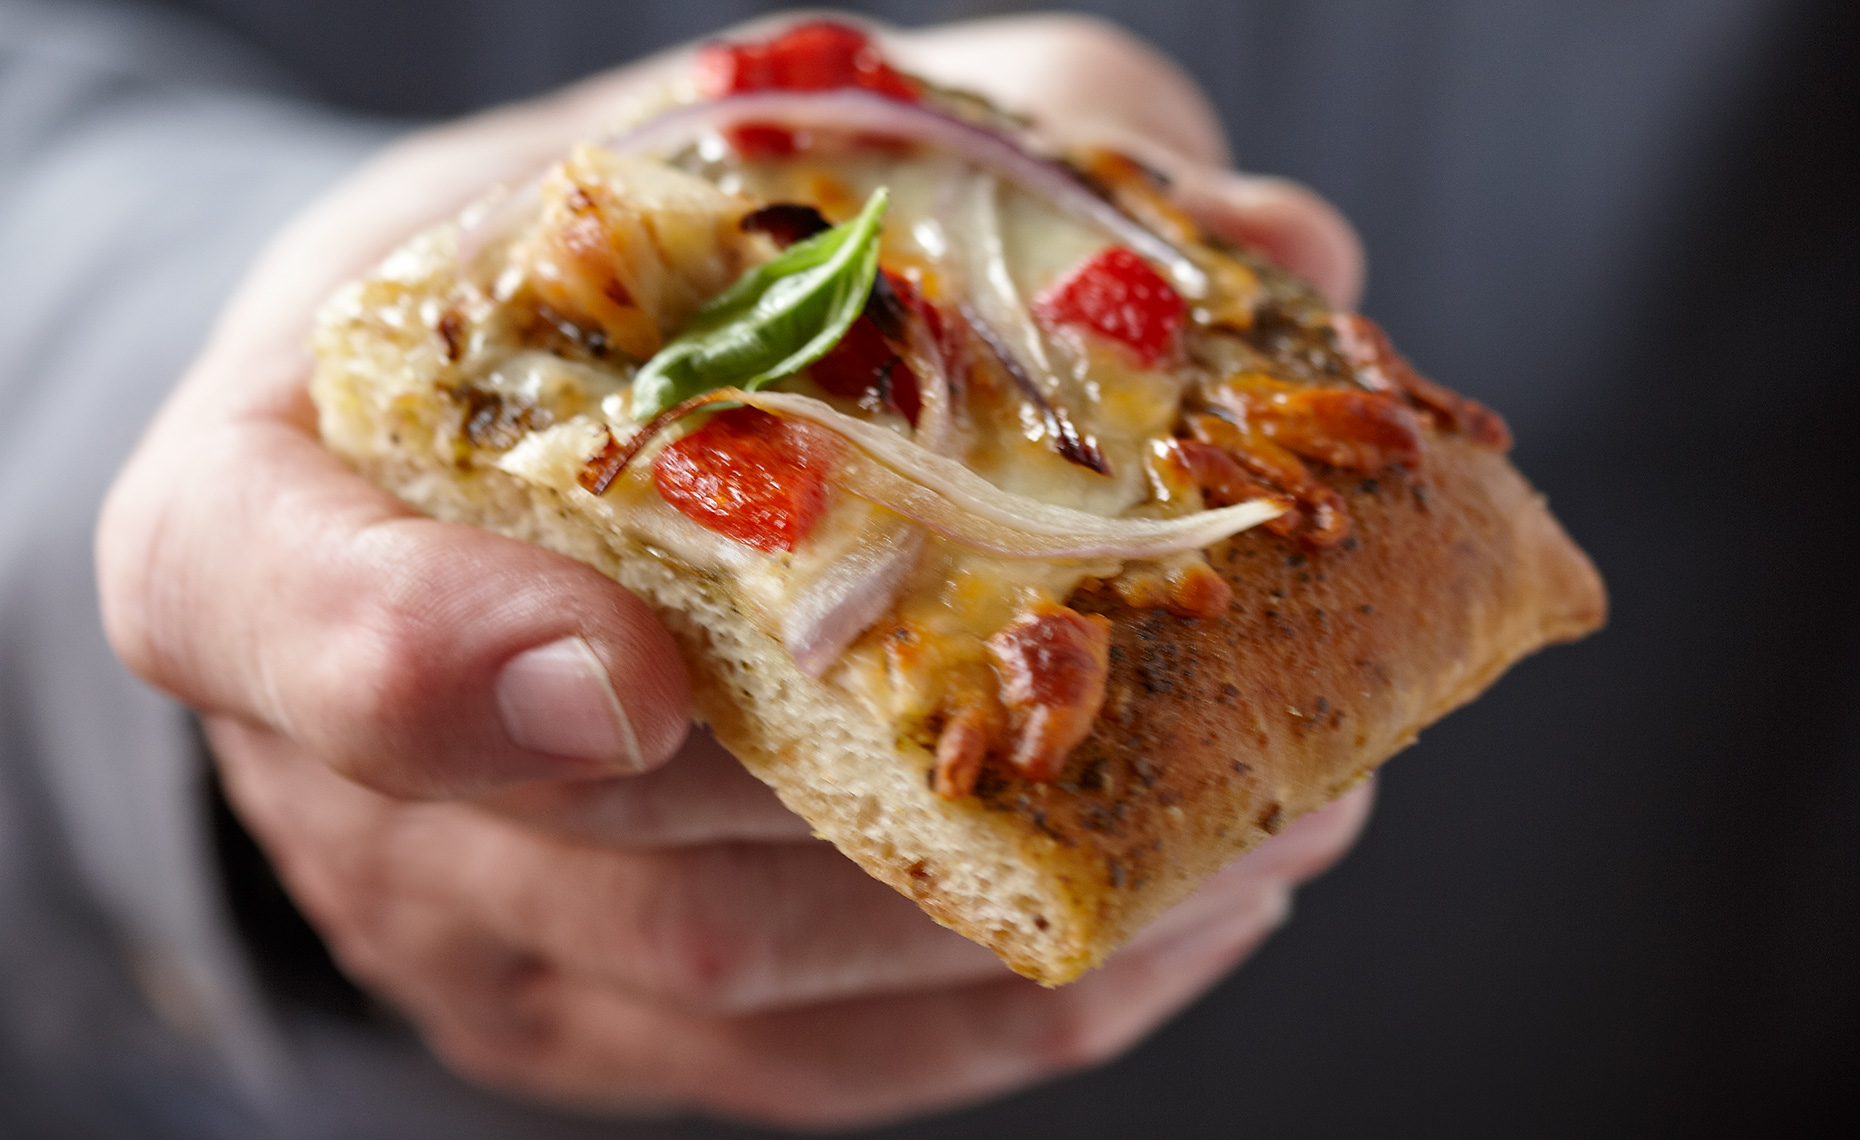 Fast Food Photographer, Burger Photography, Pizza Photography | Pohuski Studios,  Flatbread Pizza Hand